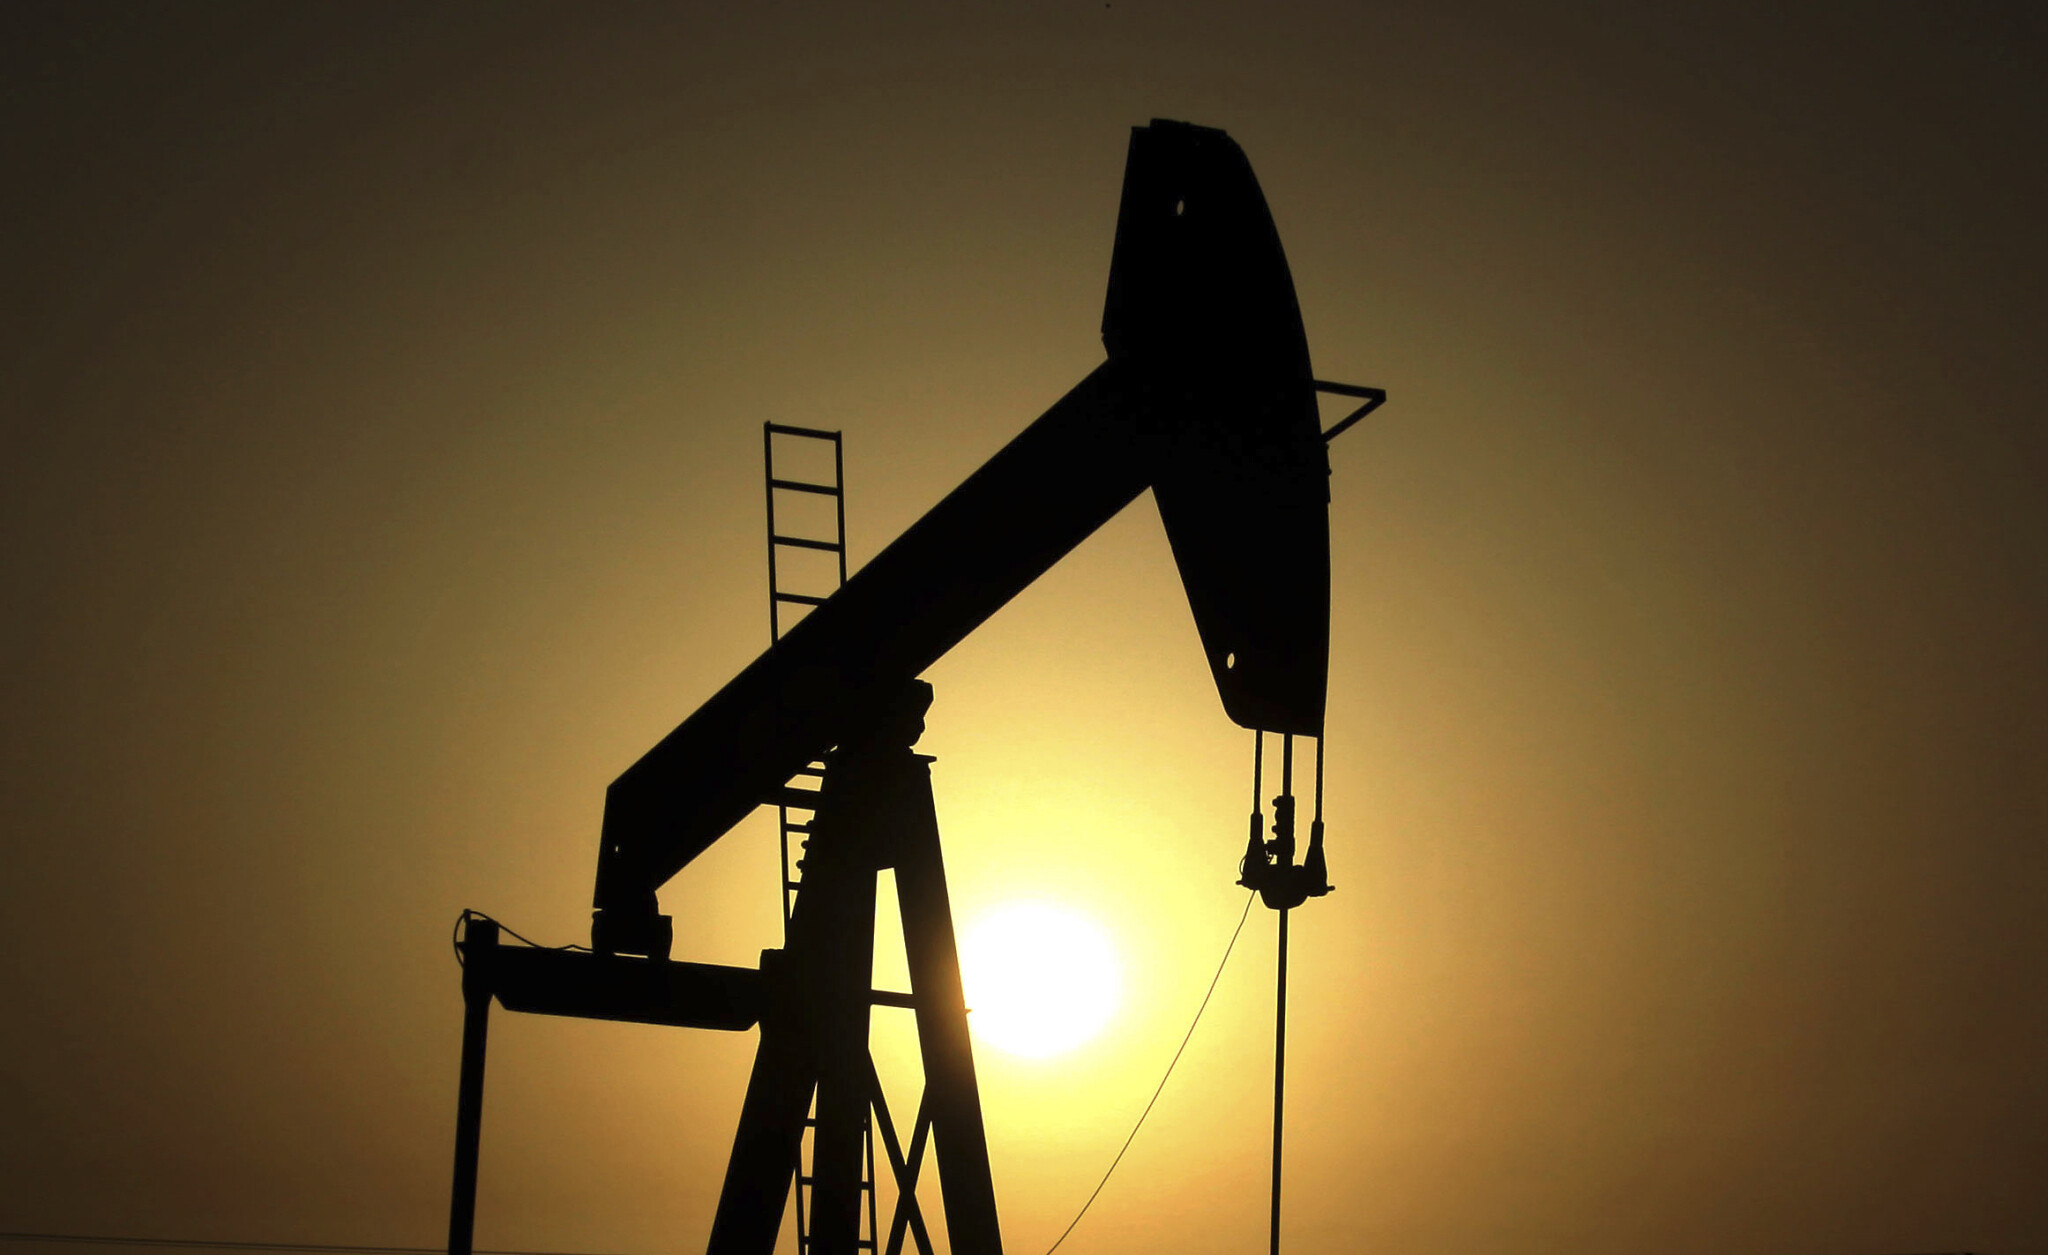 Oil hits $70 as Mideast crisis deepens fear of supply disruption